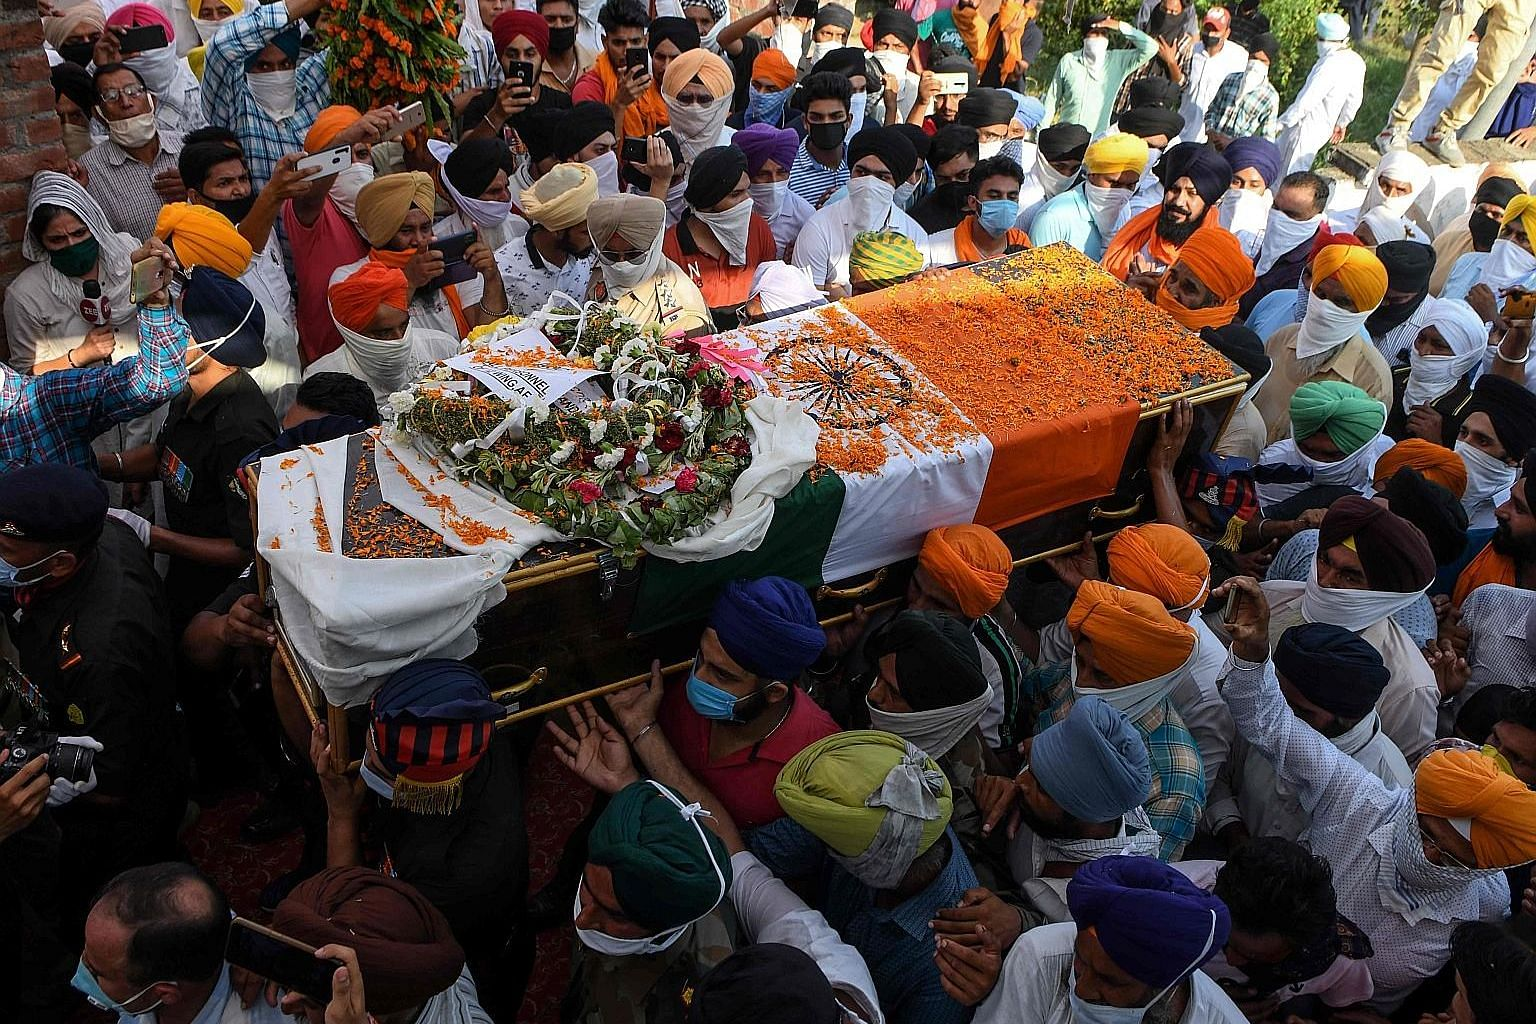 People carrying the coffin of Indian soldier Satnam Singh, who was killed in a clash between Indian and Chinese forces in the Galwan Valley along the Line of Actual Control (LAC) in June. A root cause of the problem is the fuzzy nature of the LAC, sa